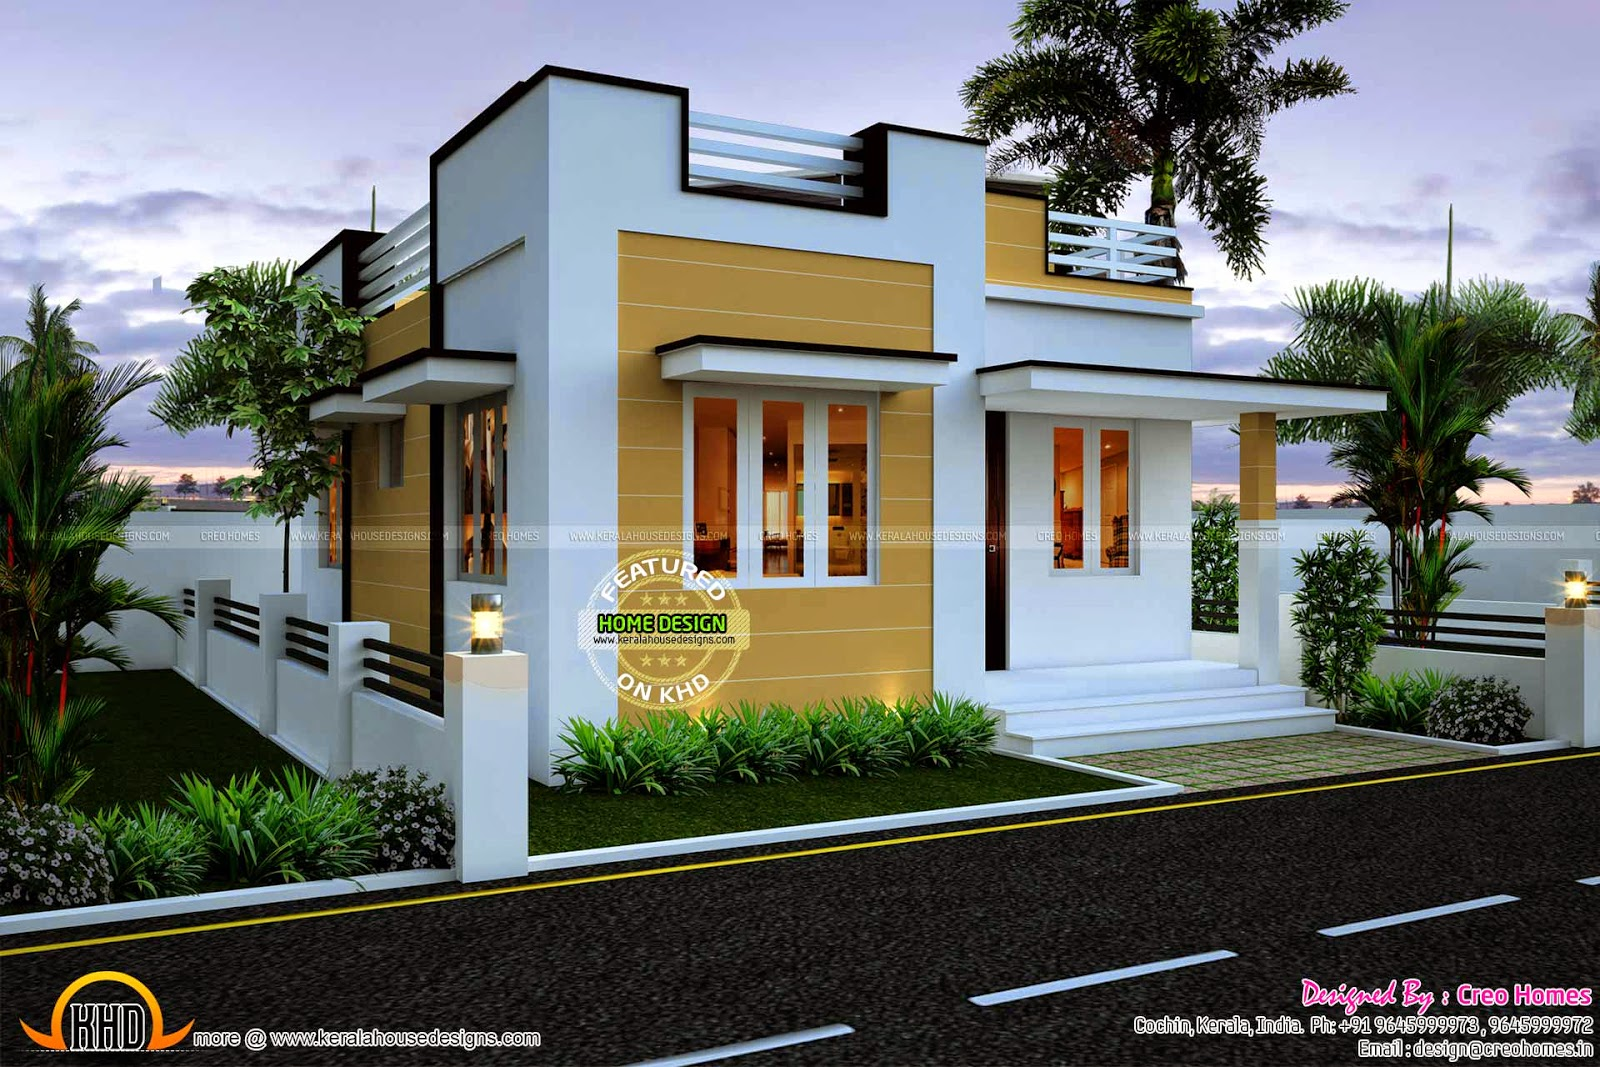 50 different custom home designs of beautiful houses for Different house designs